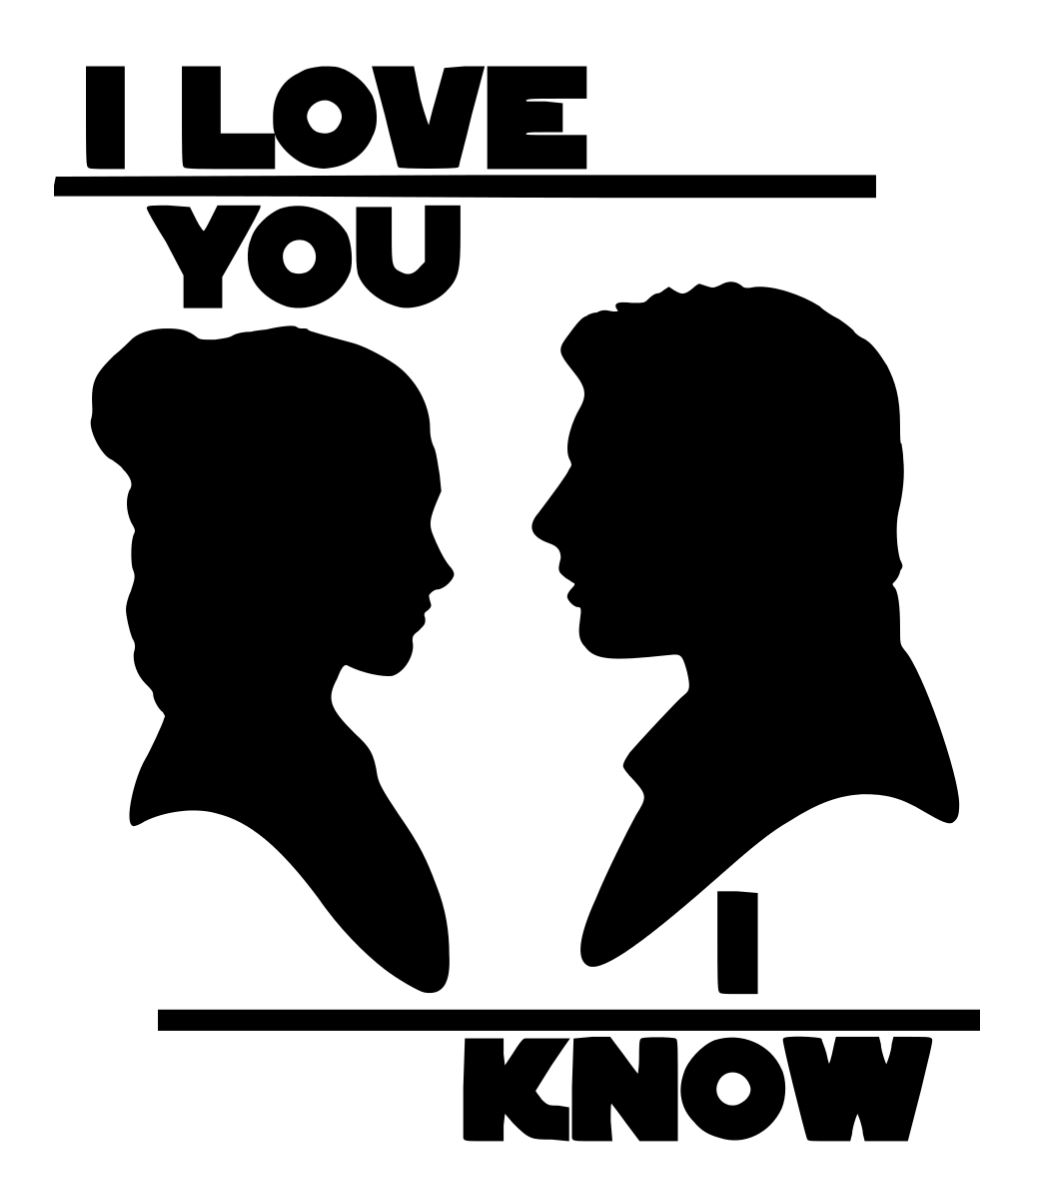 I love you, I know